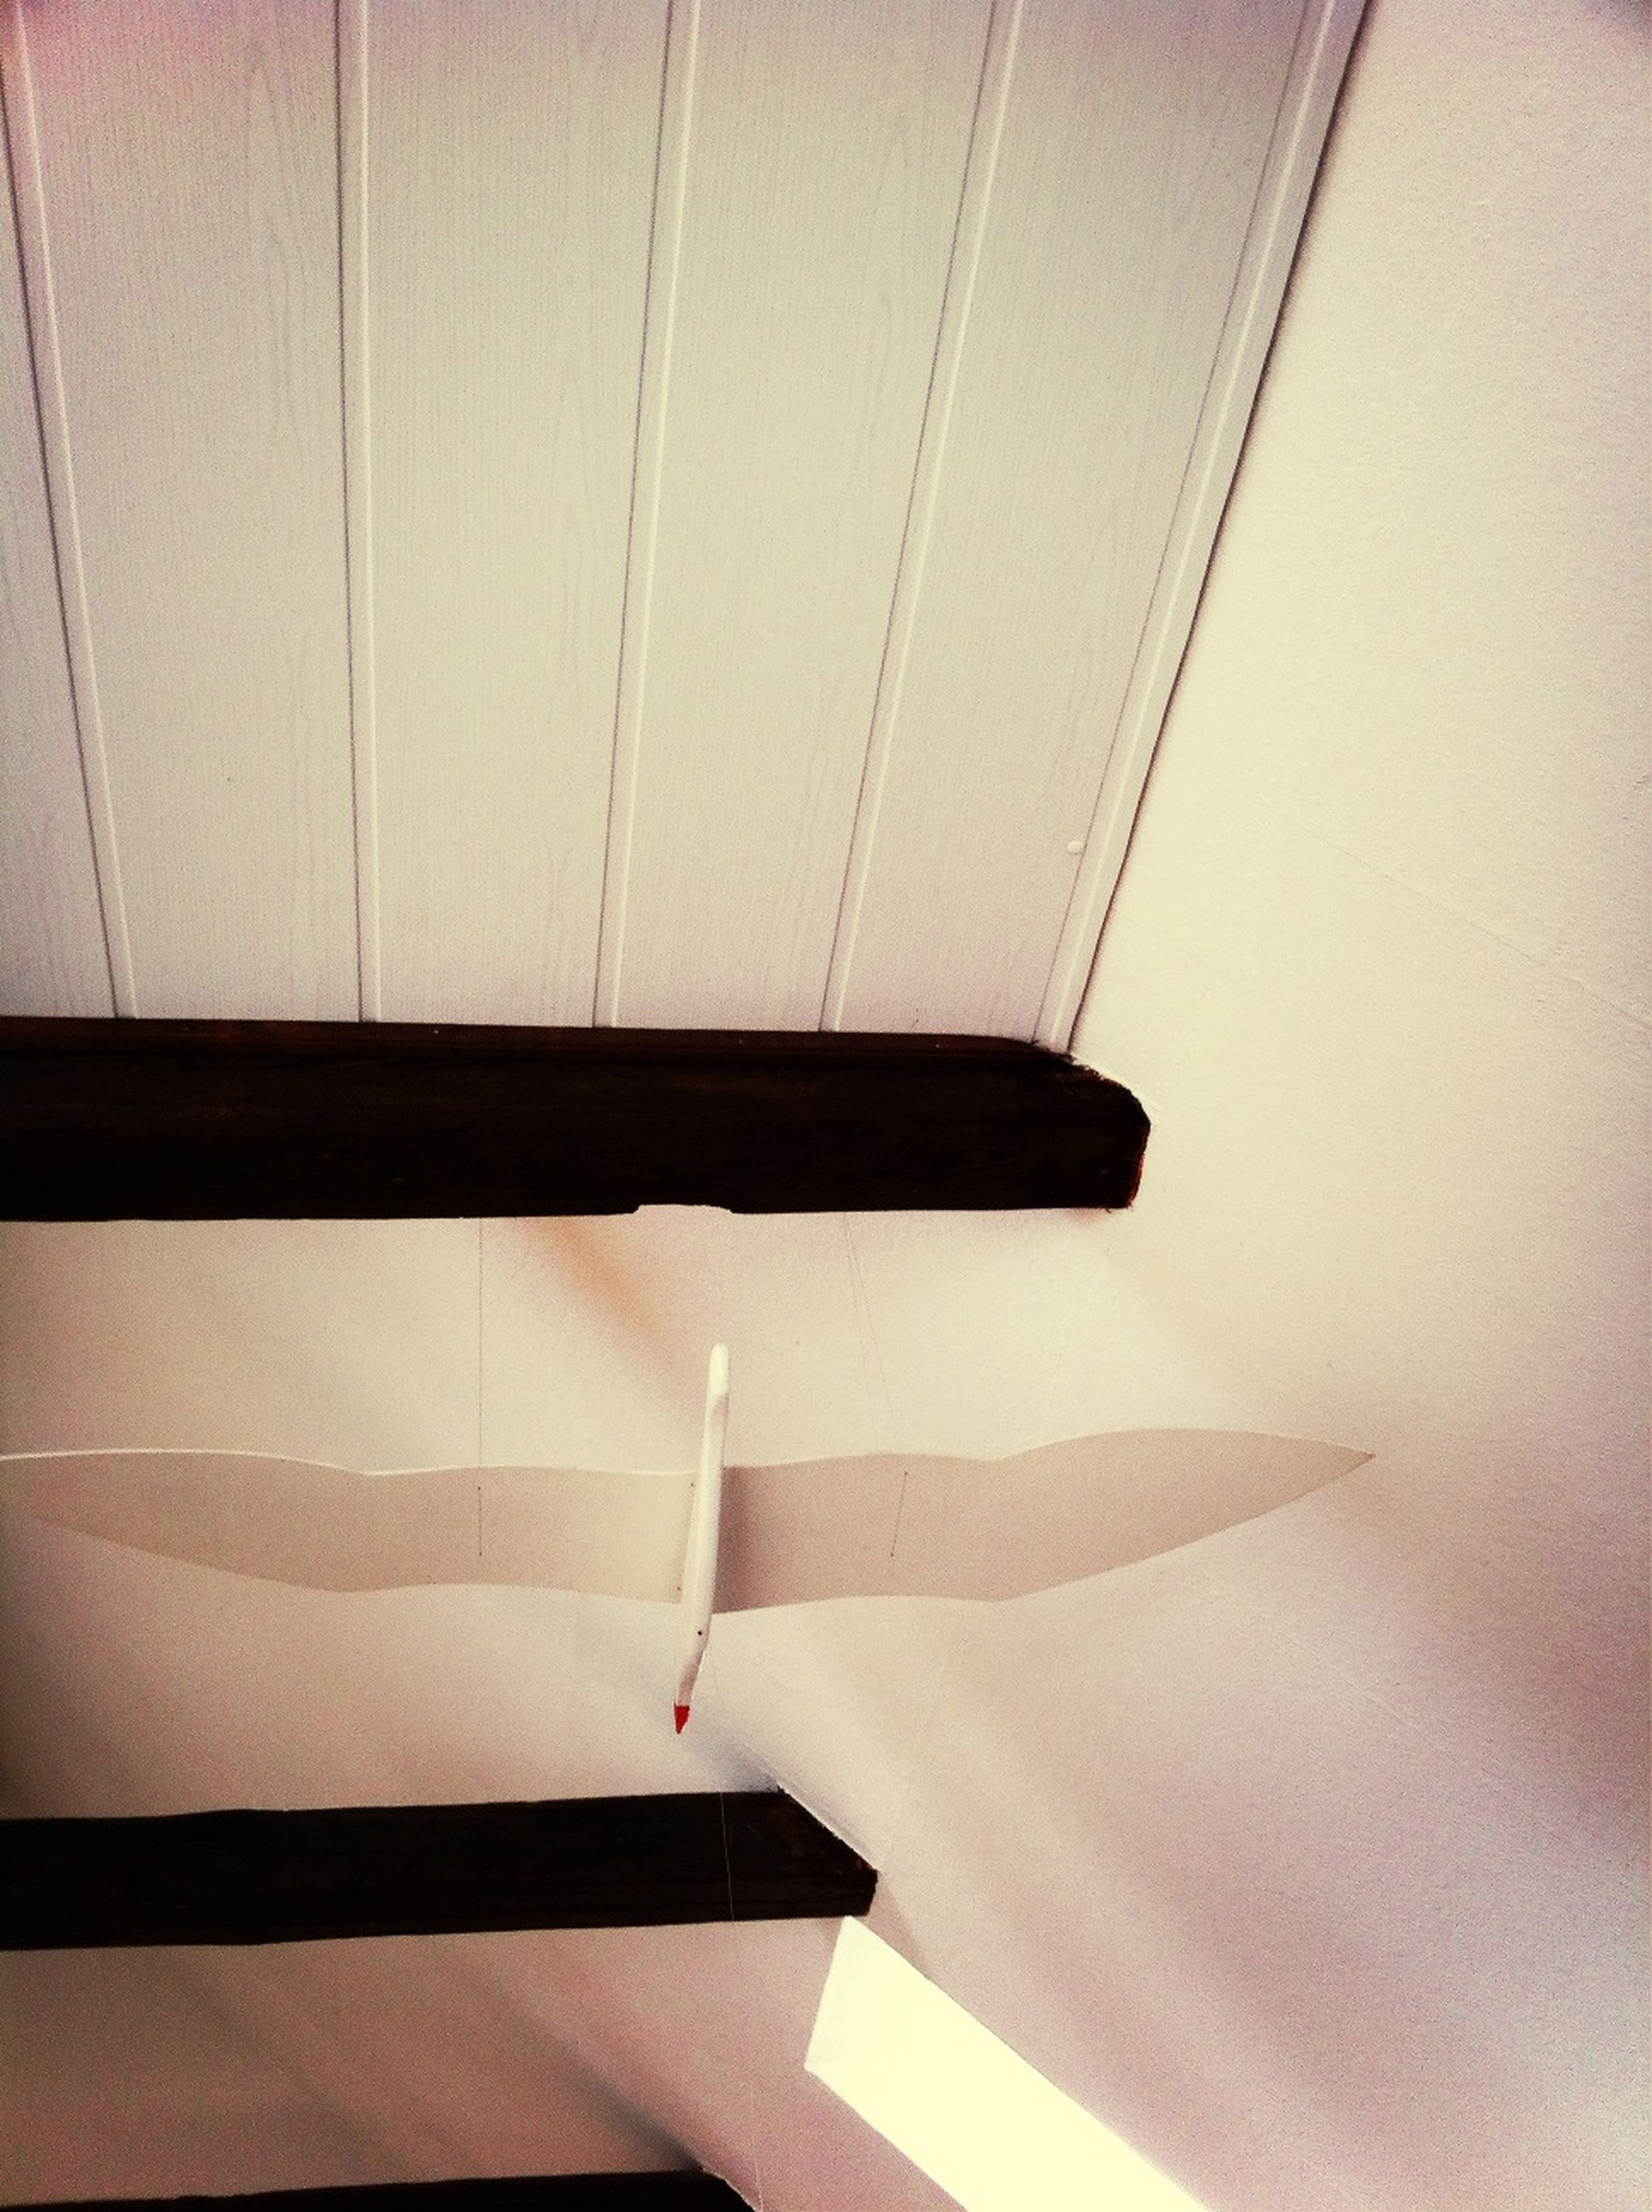 indoors, pattern, shadow, wall - building feature, part of, high angle view, close-up, no people, design, sunlight, built structure, single object, absence, cropped, home interior, architecture, wall, steps, still life, white color